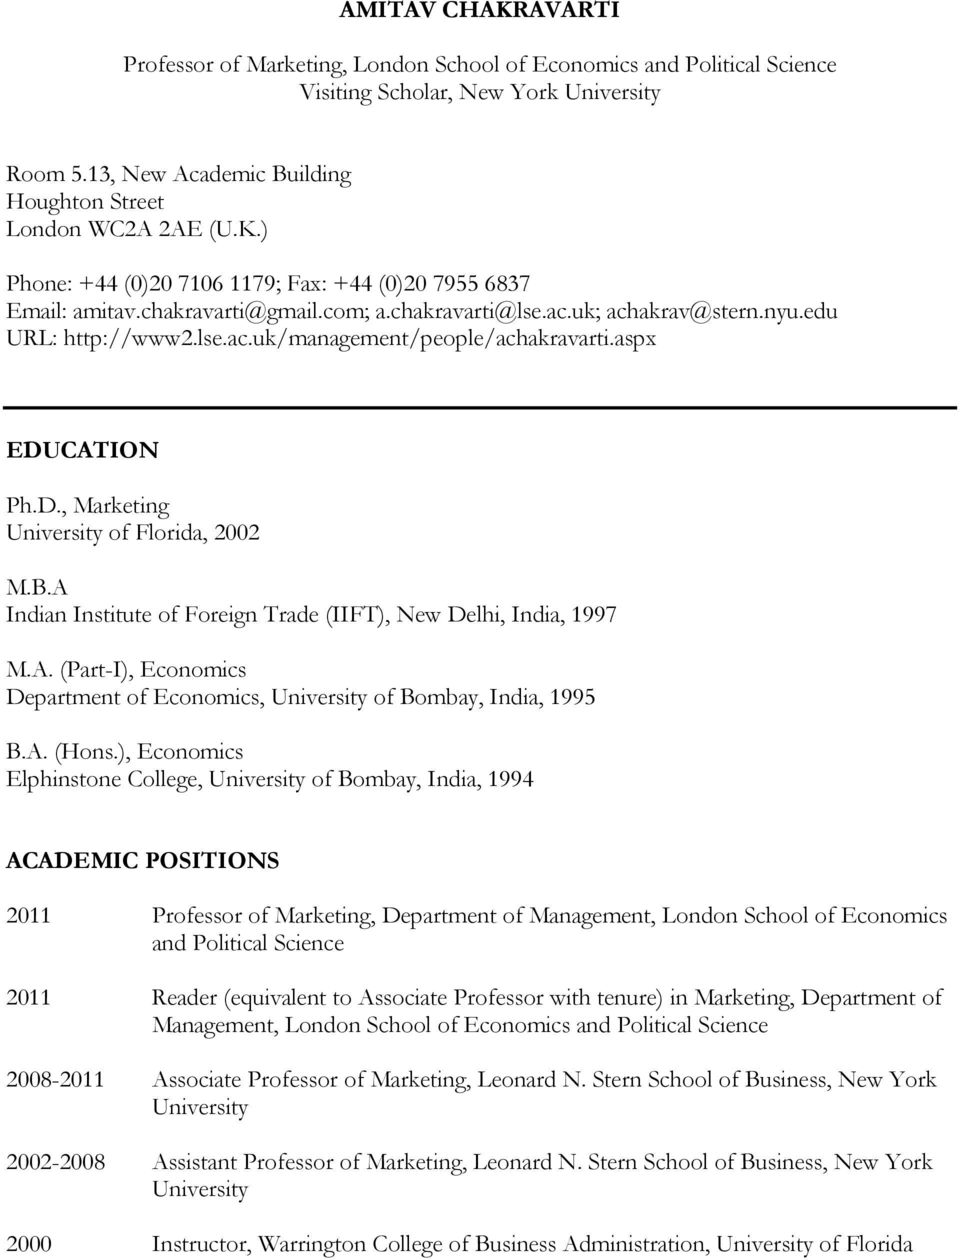 A Indian Institute of Foreign Trade (IIFT), New Delhi, India, 1997 M.A. (Part-I), Economics Department of Economics, University of Bombay, India, 1995 B.A. (Hons.